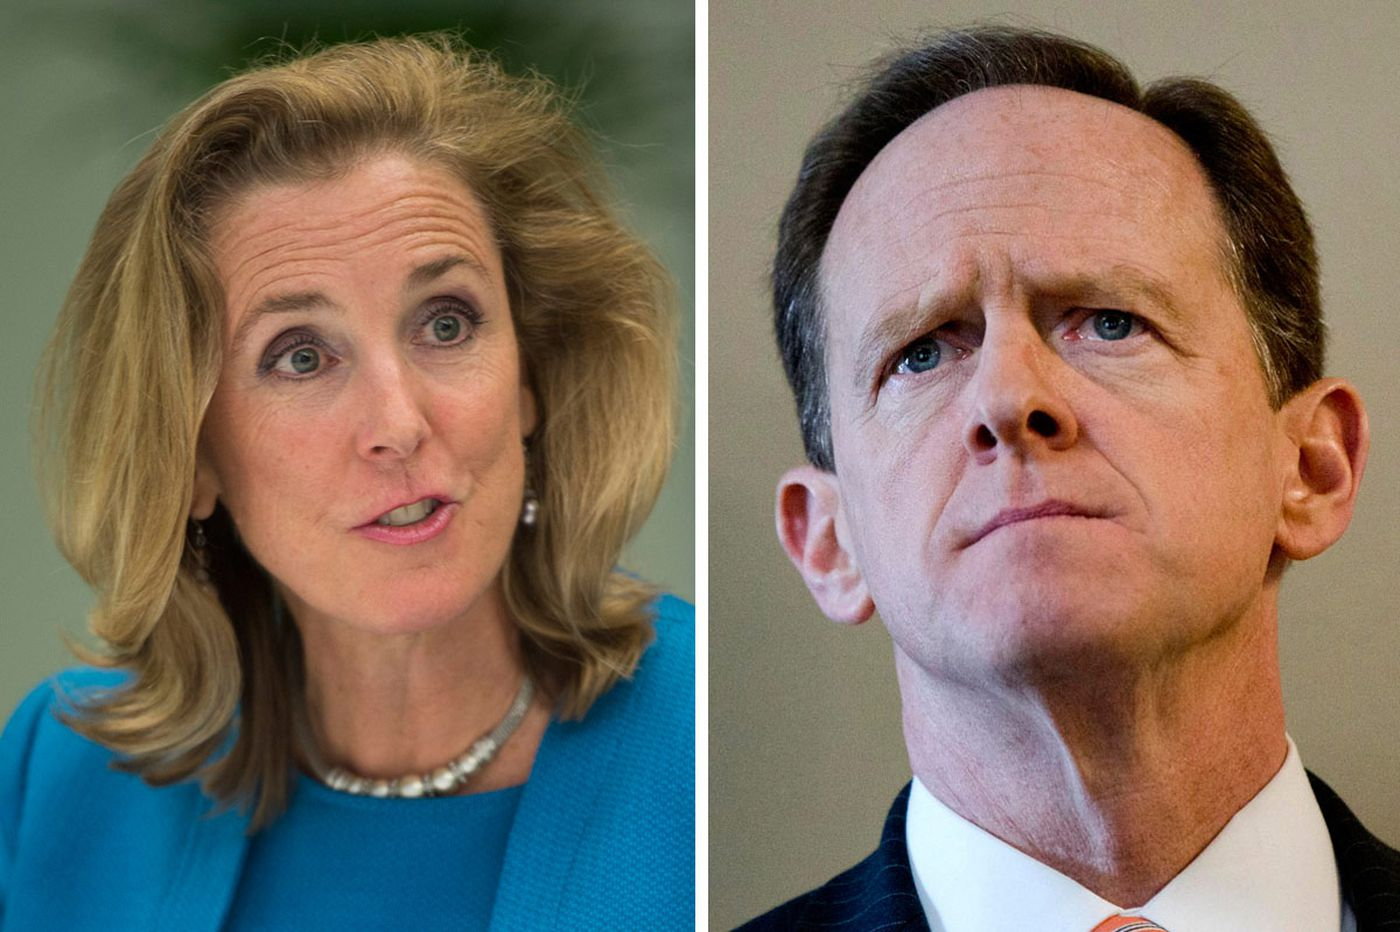 In massacre's aftermath, Democrats hammer Toomey on gun laws